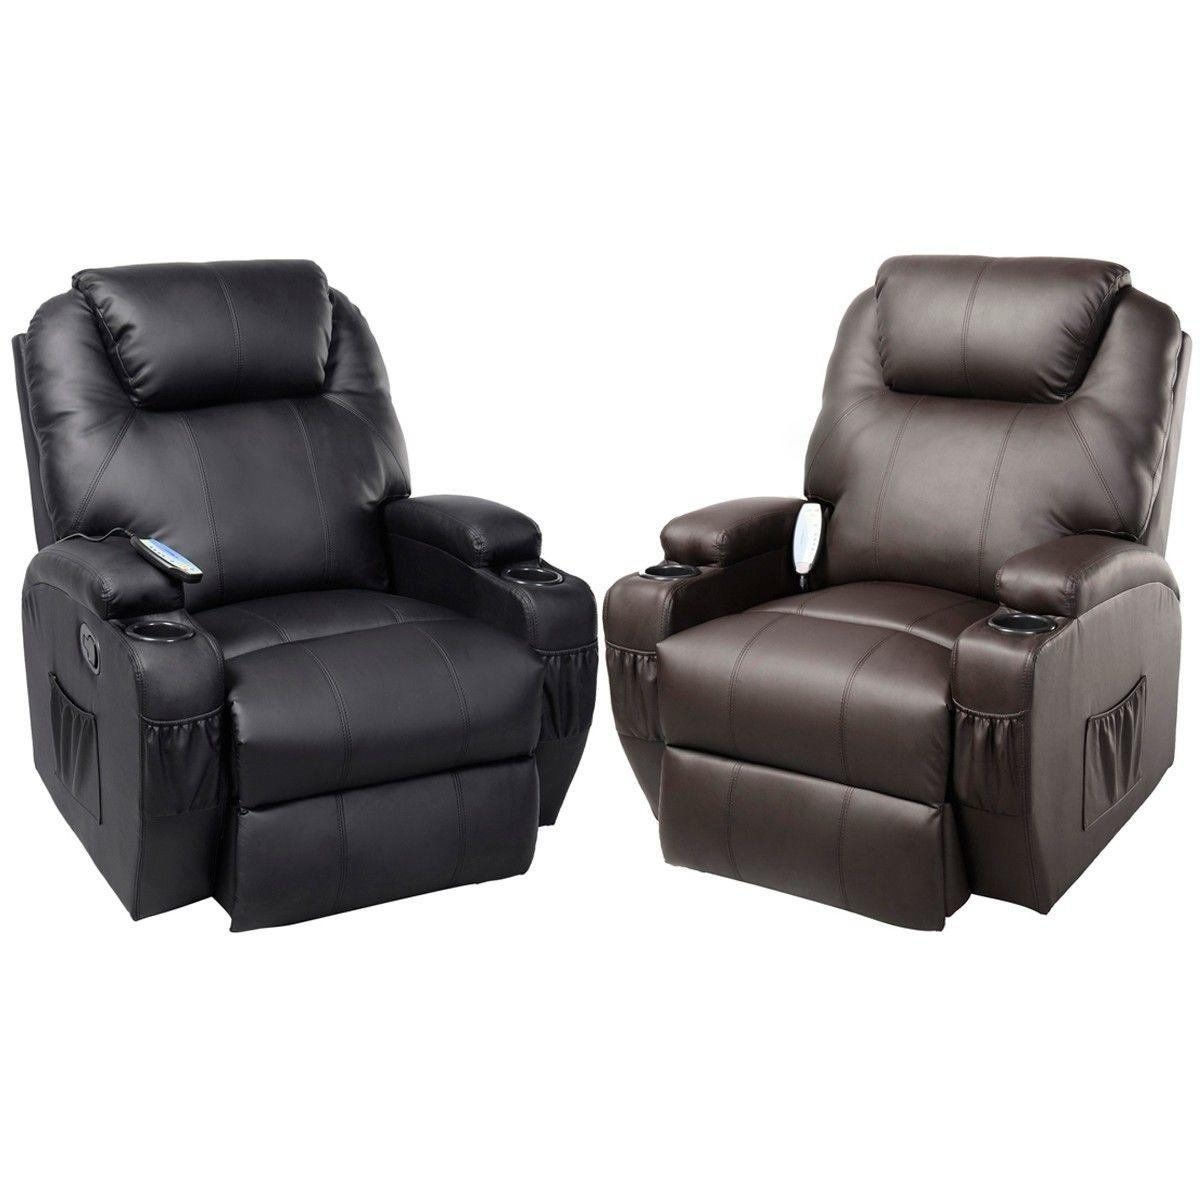 Ergonomic Heated Massage Recliner Sofa Chair Deluxe Lounge Inside Ergonomic Sofas And Chairs (View 2 of 20)